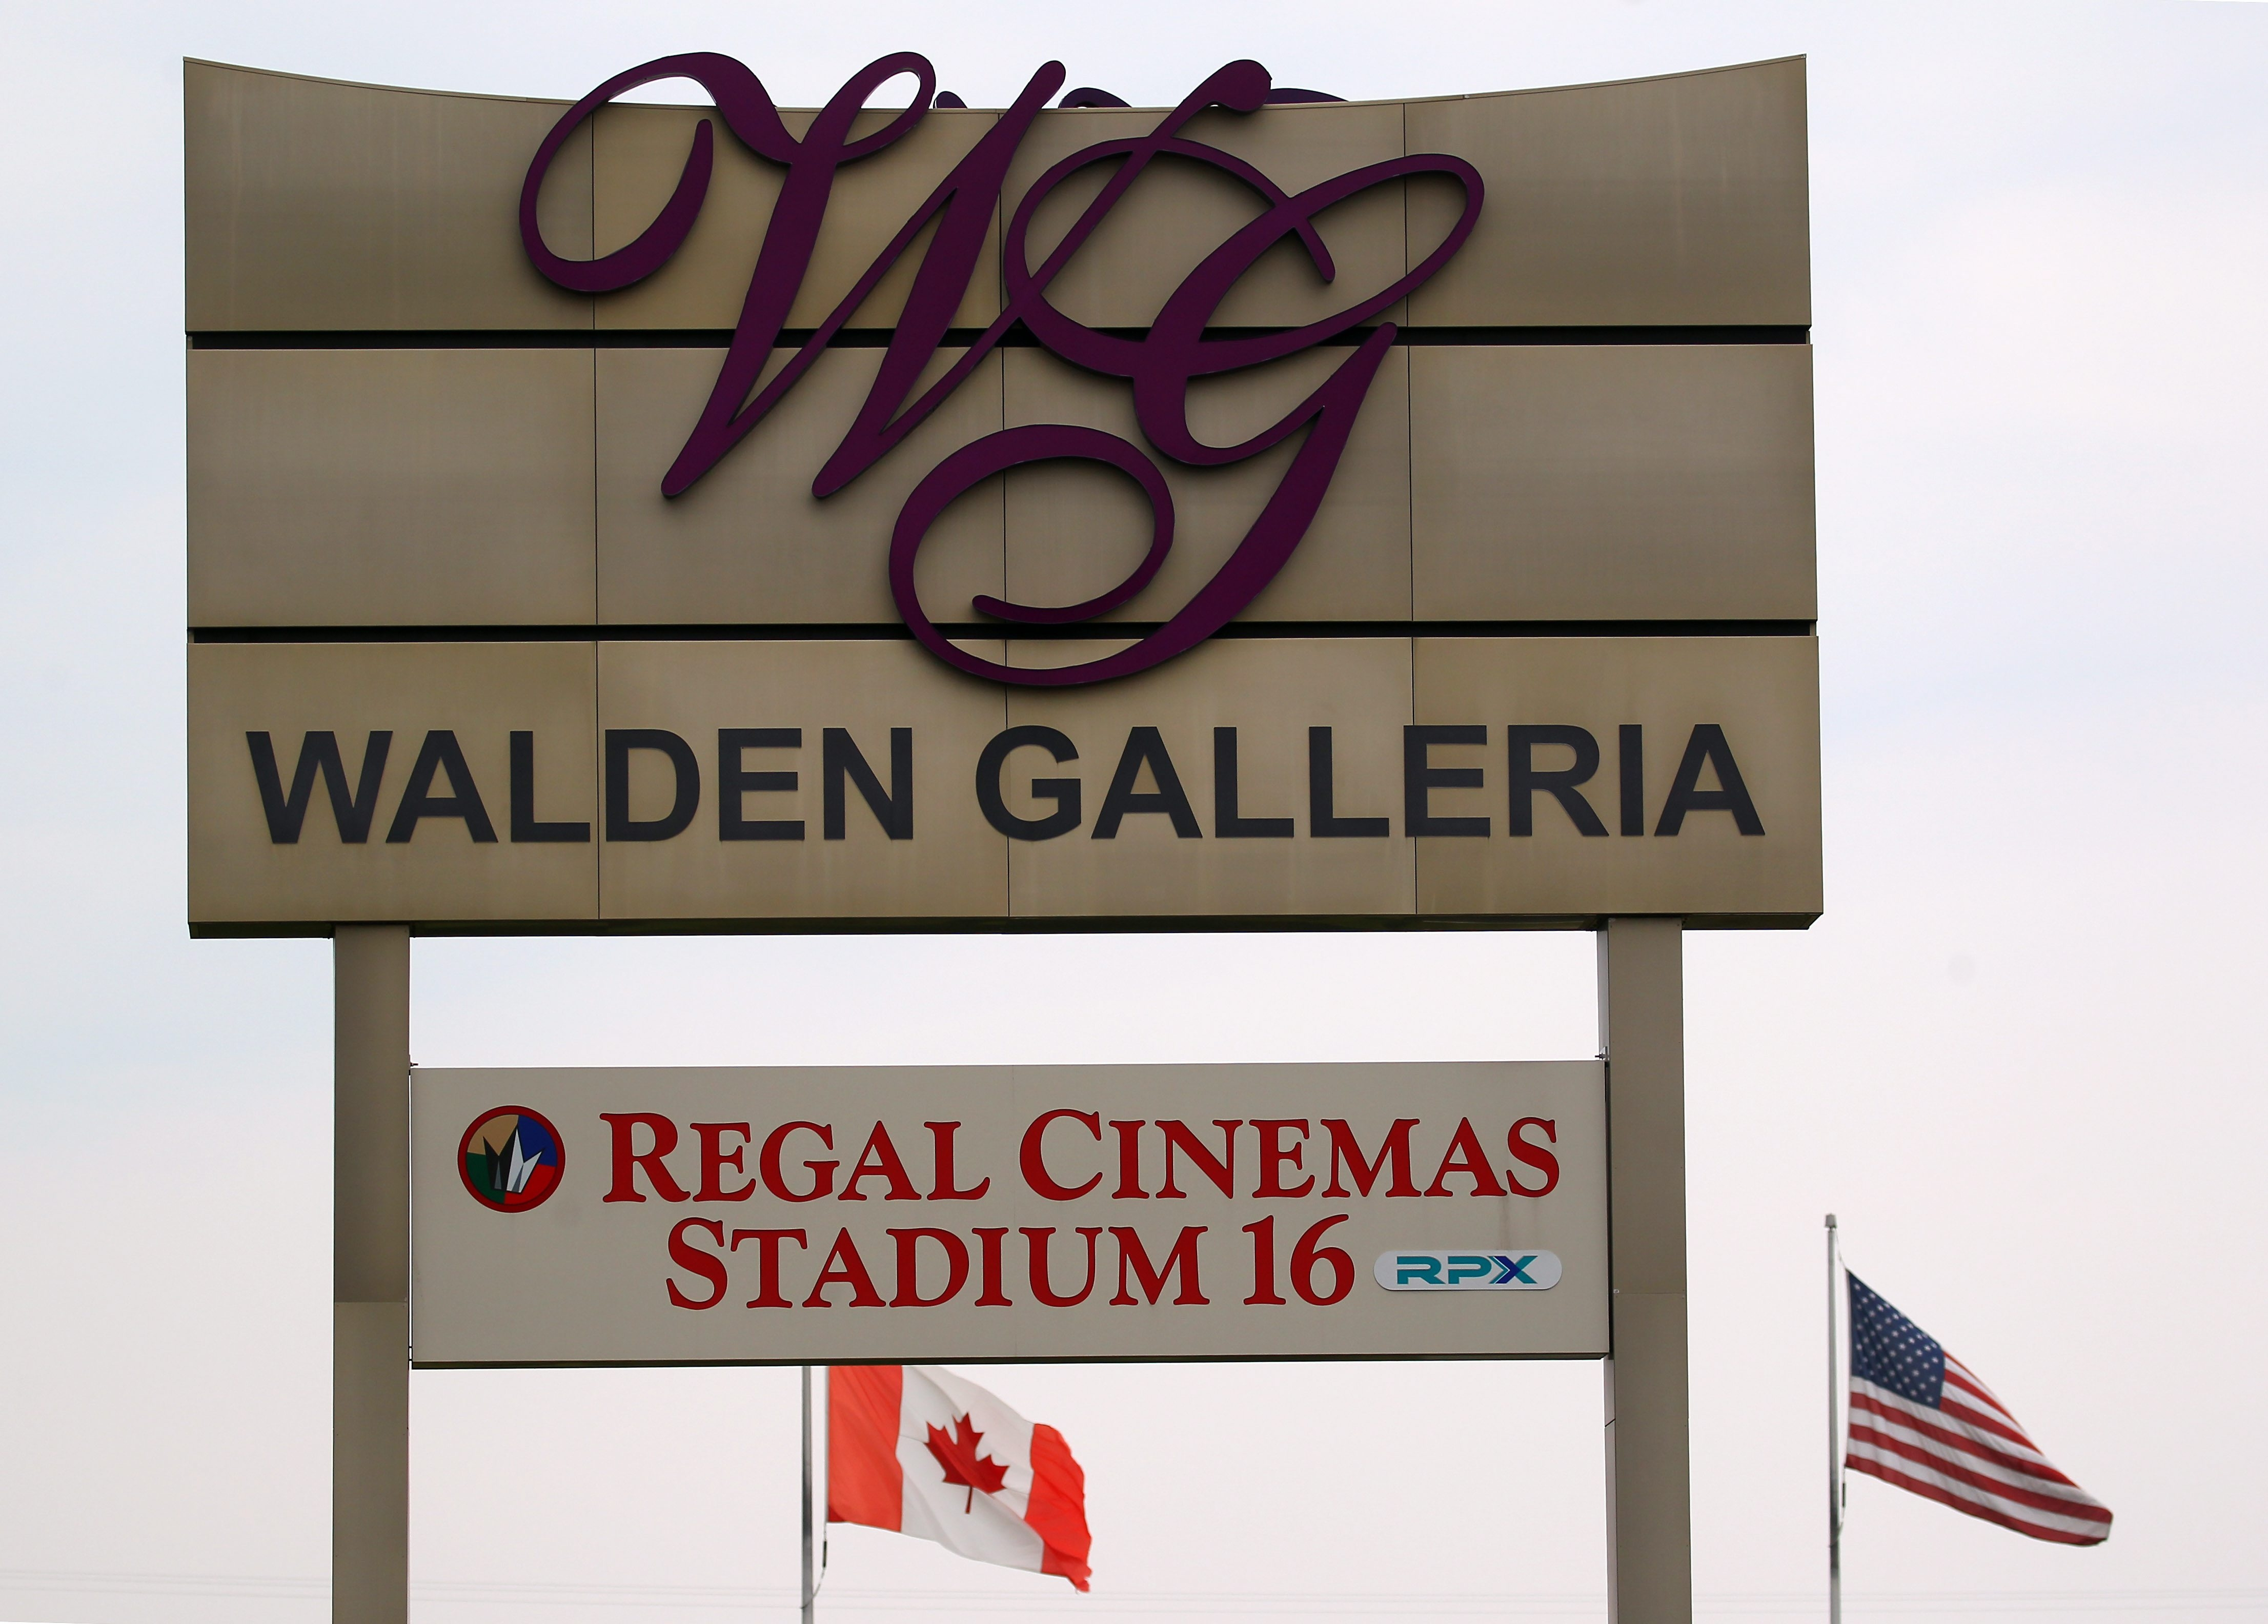 An on-site inspection of the Walden Galleria last May found problems in the mall's parking lots, including several spaces too narrow and a curb cut too steep. Inside, wall-mounted bathroom features were too high, doors were too difficult to open and objects on the floor blocked passage. Other access problems included elevator doors that closed too quickly and low-hanging ceiling areas under escalators with no posted warning signs. (Mark Mulville/News file photo)